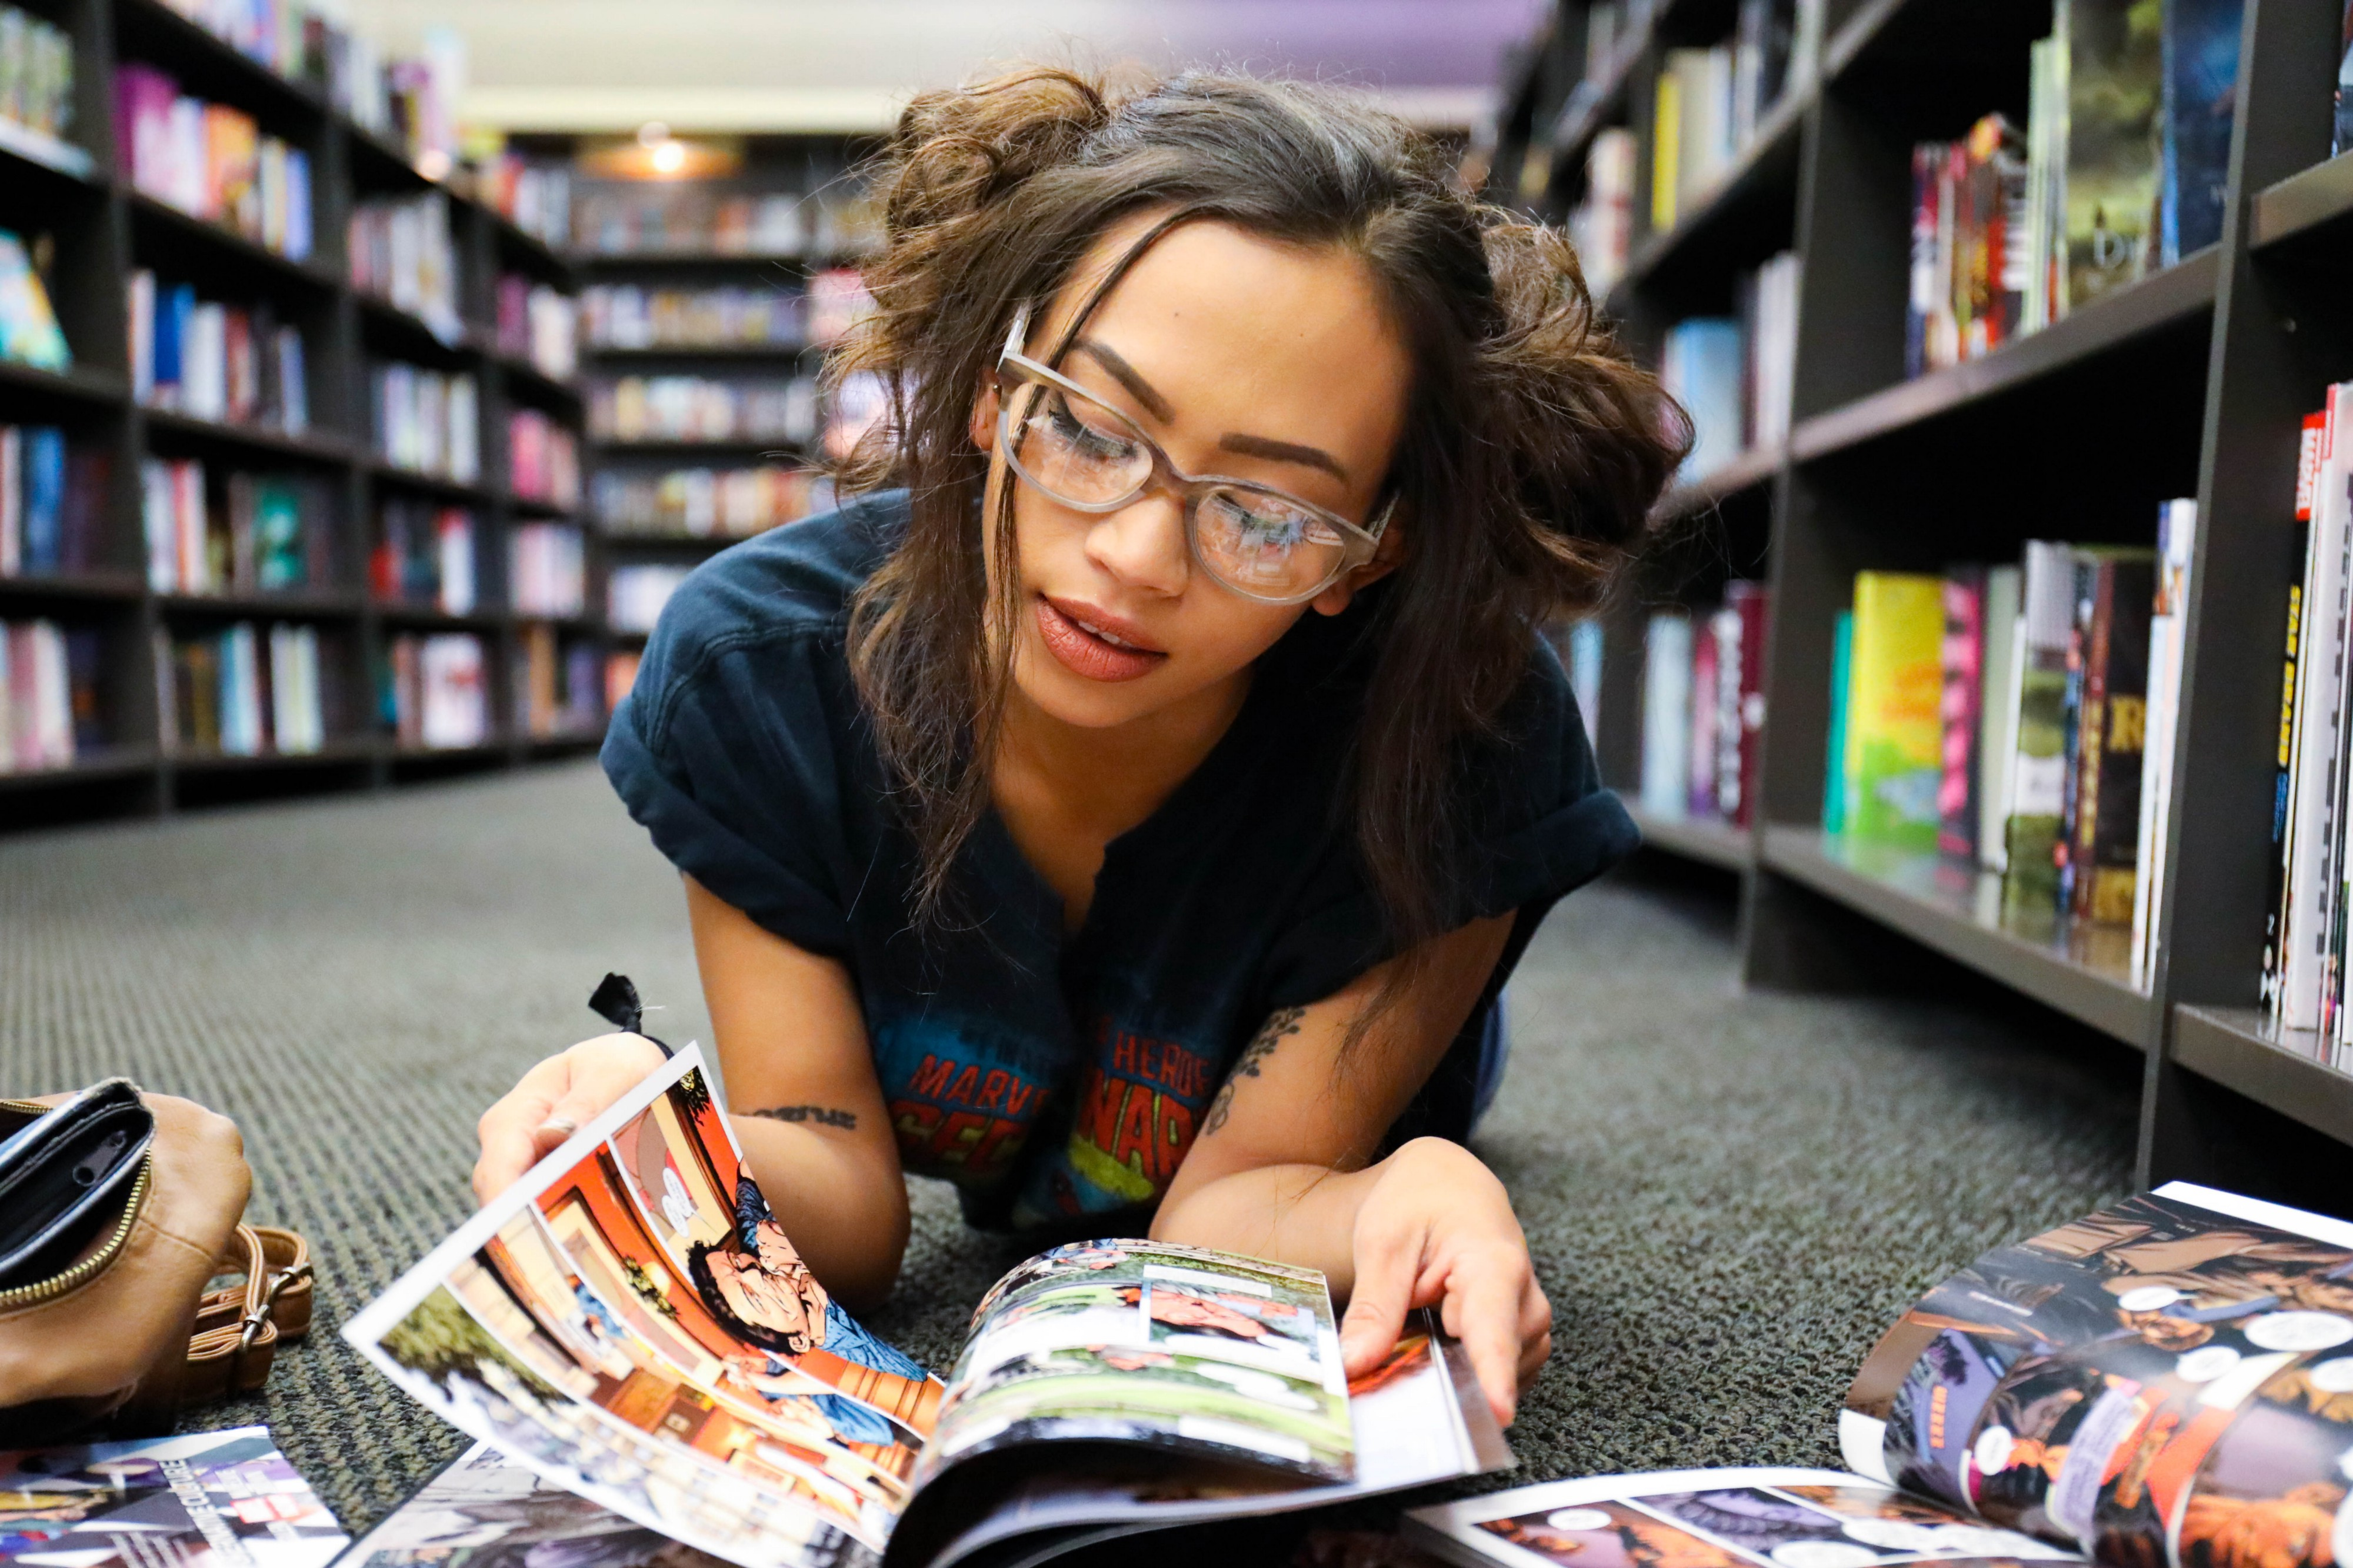 A young woman on the floor of a bookstore, paging through a comic book. She seems cool.